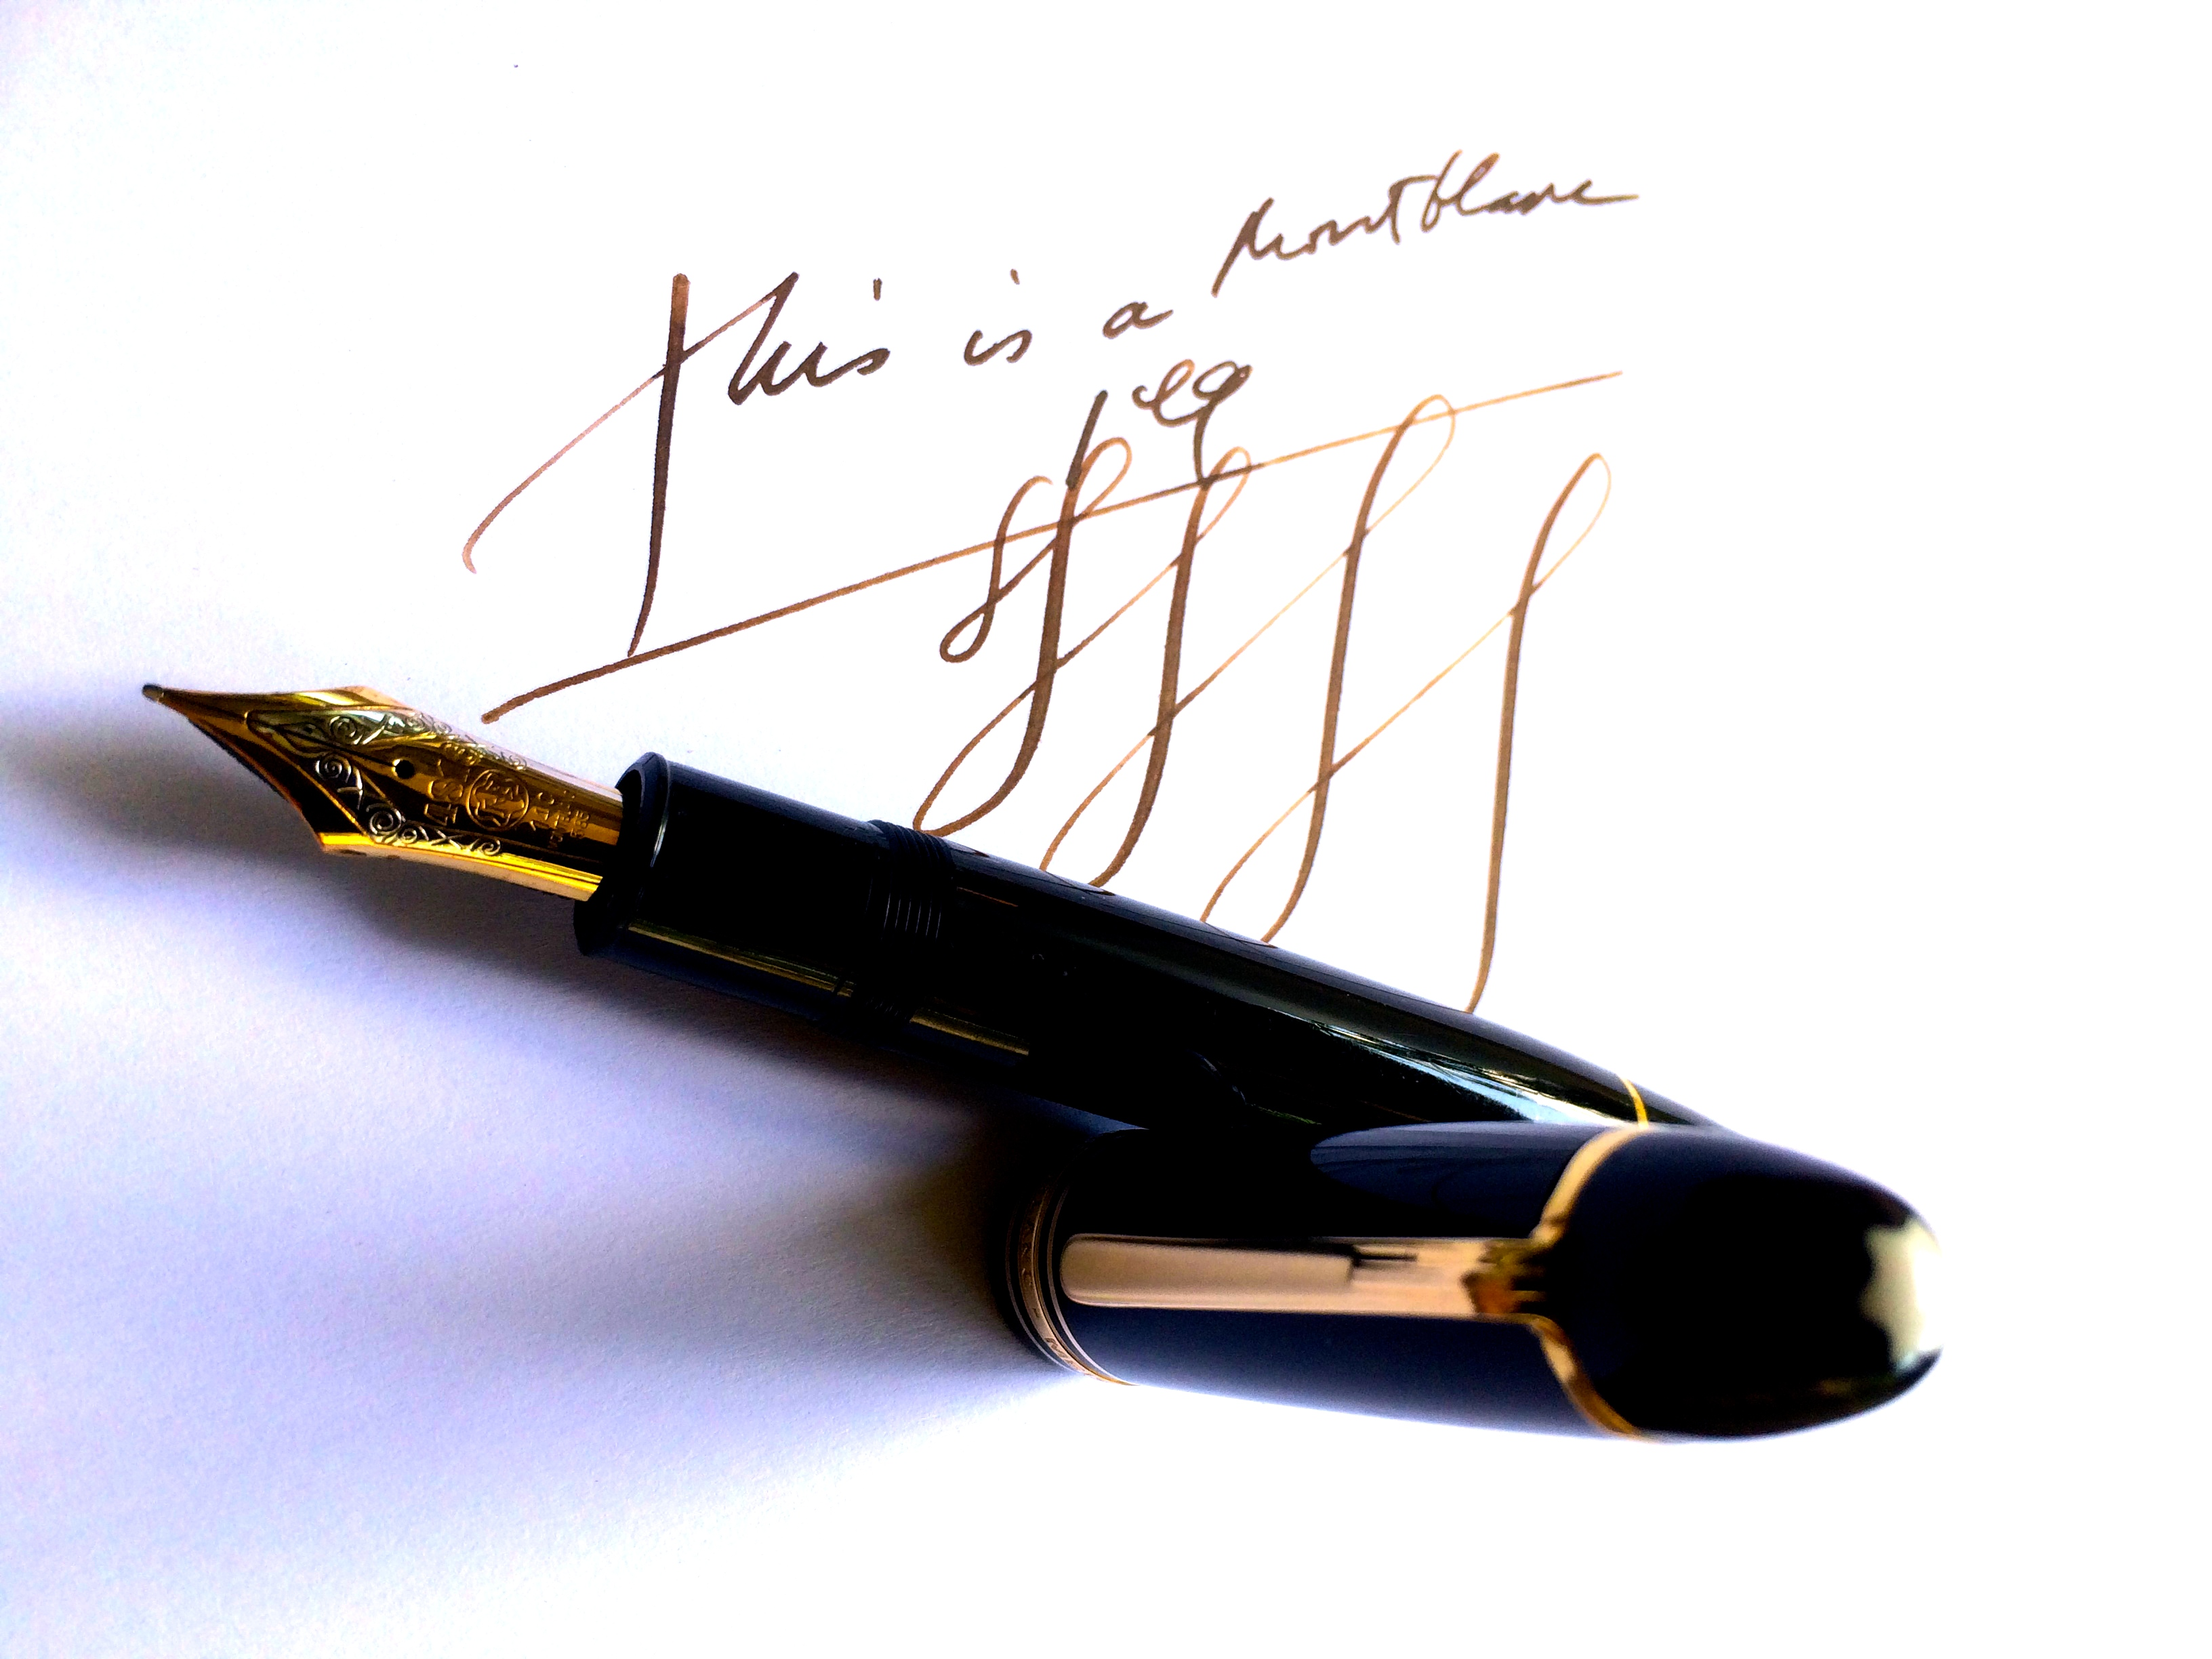 60d91783ff244 Penman No. 109: Ode to the 149